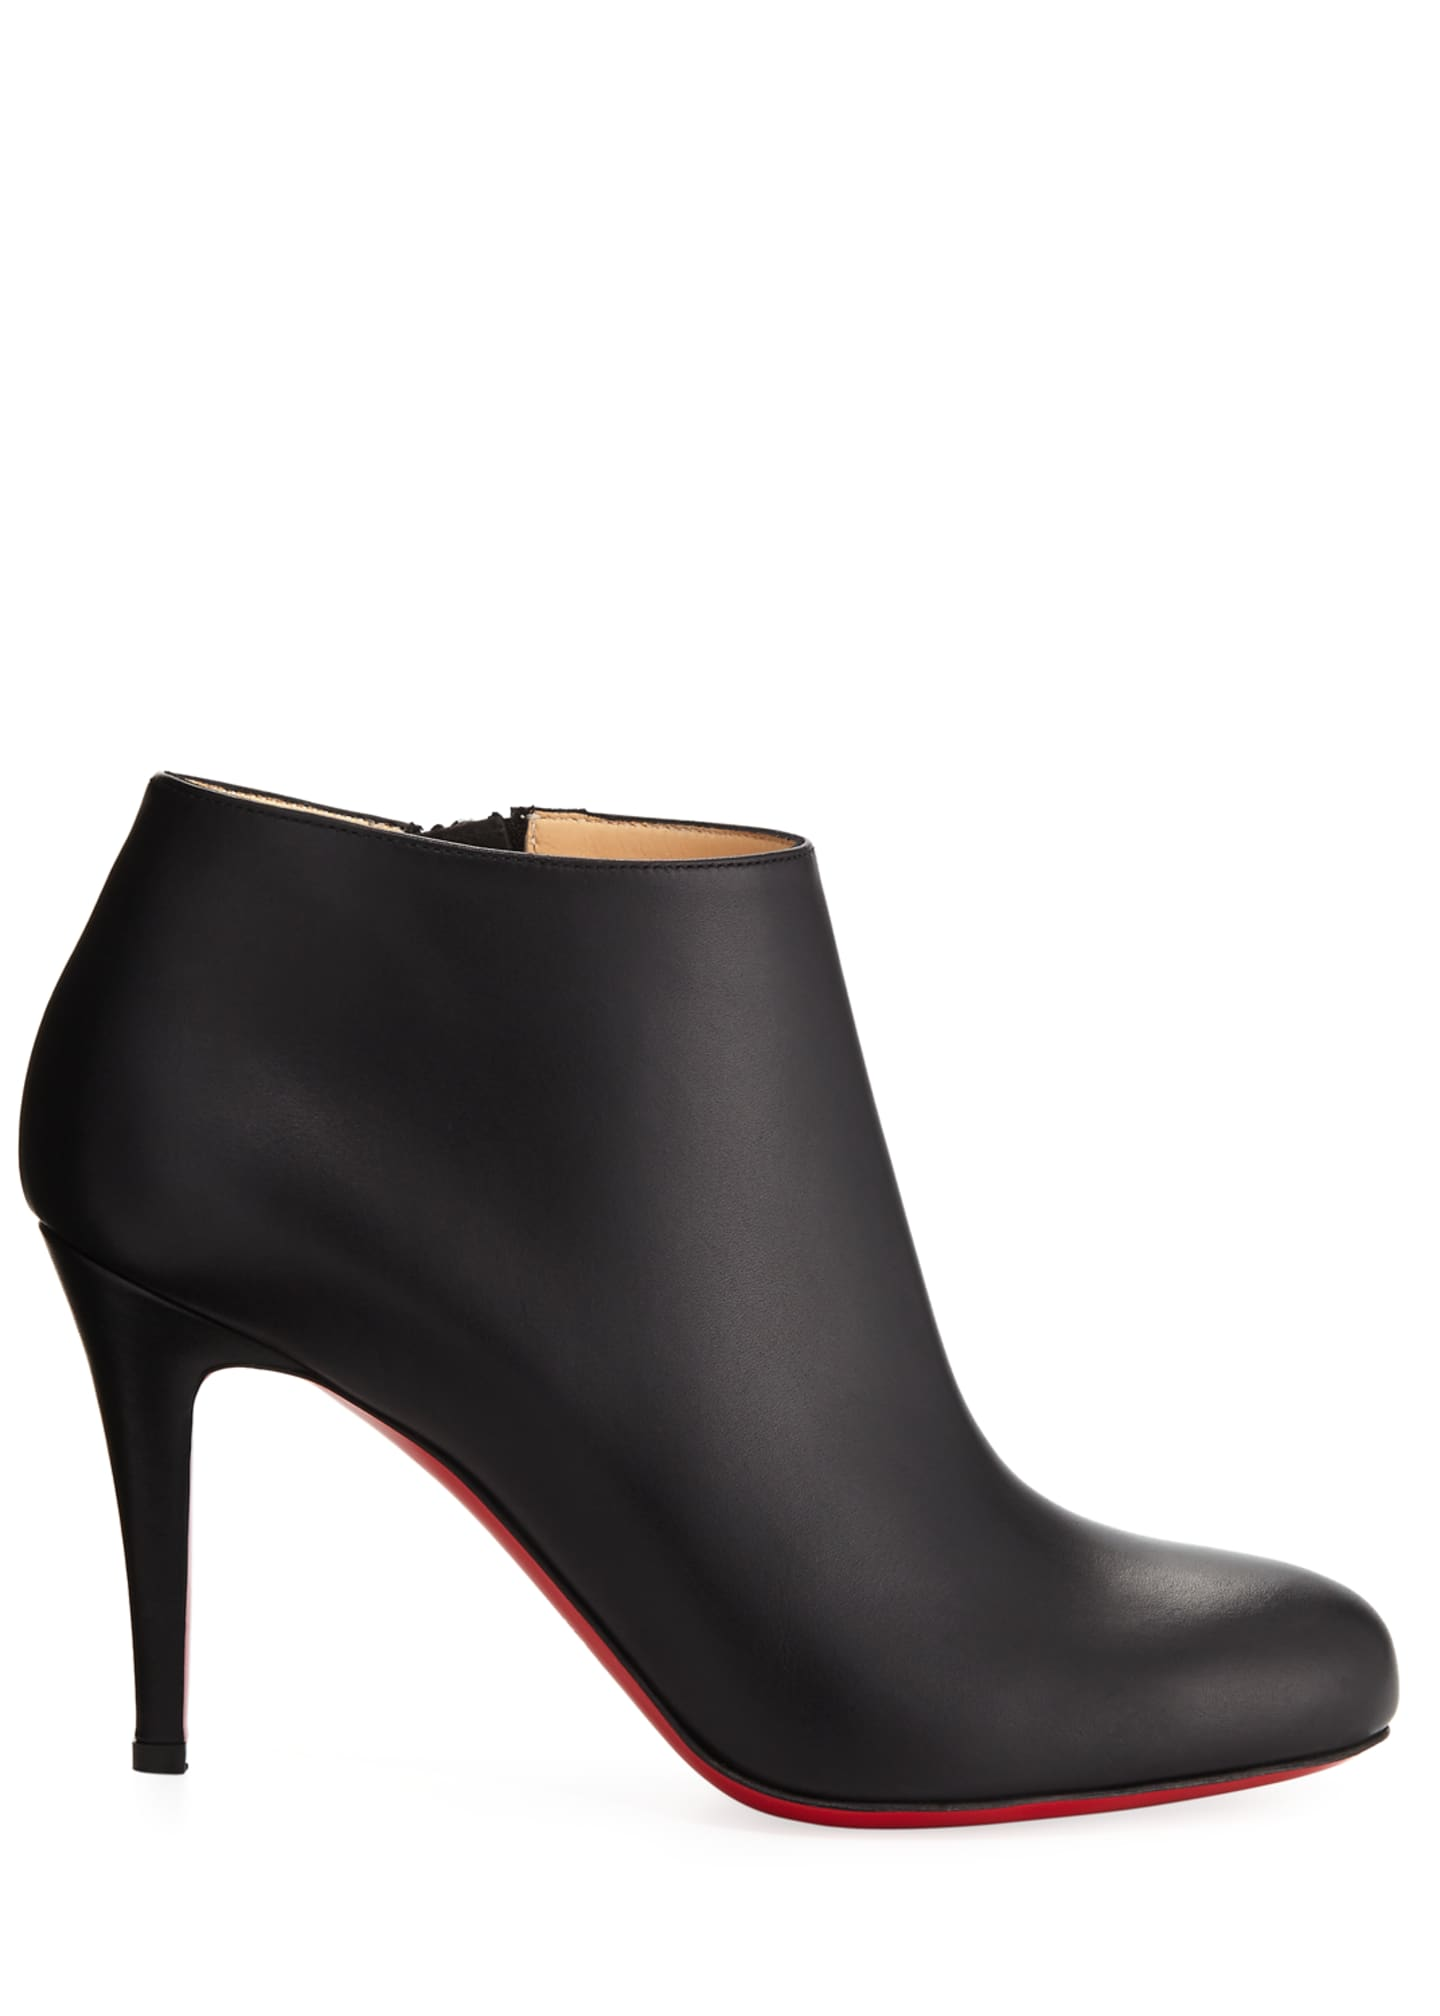 Image 2 of 5: Belle Leather Red-Sole Ankle Boots